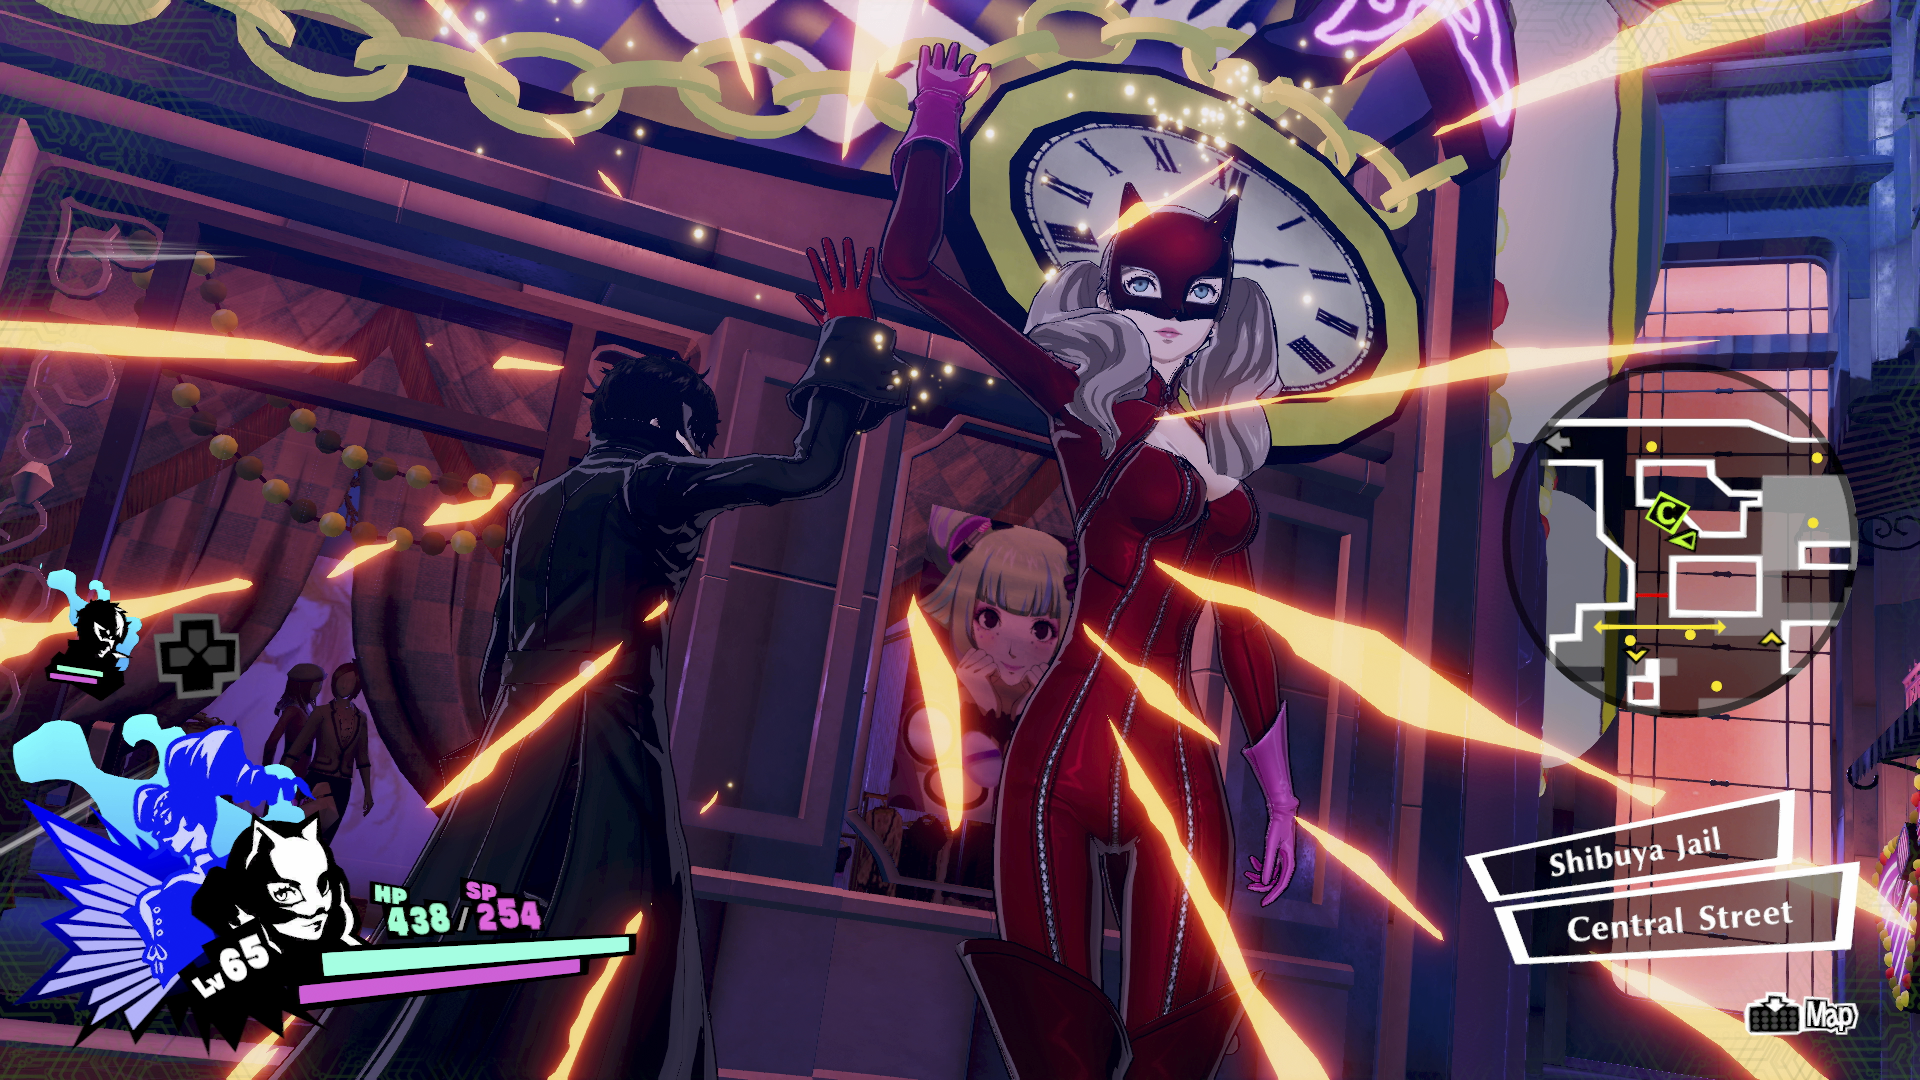 Persona 5 STRIKERS - Gallery Screenshot 1